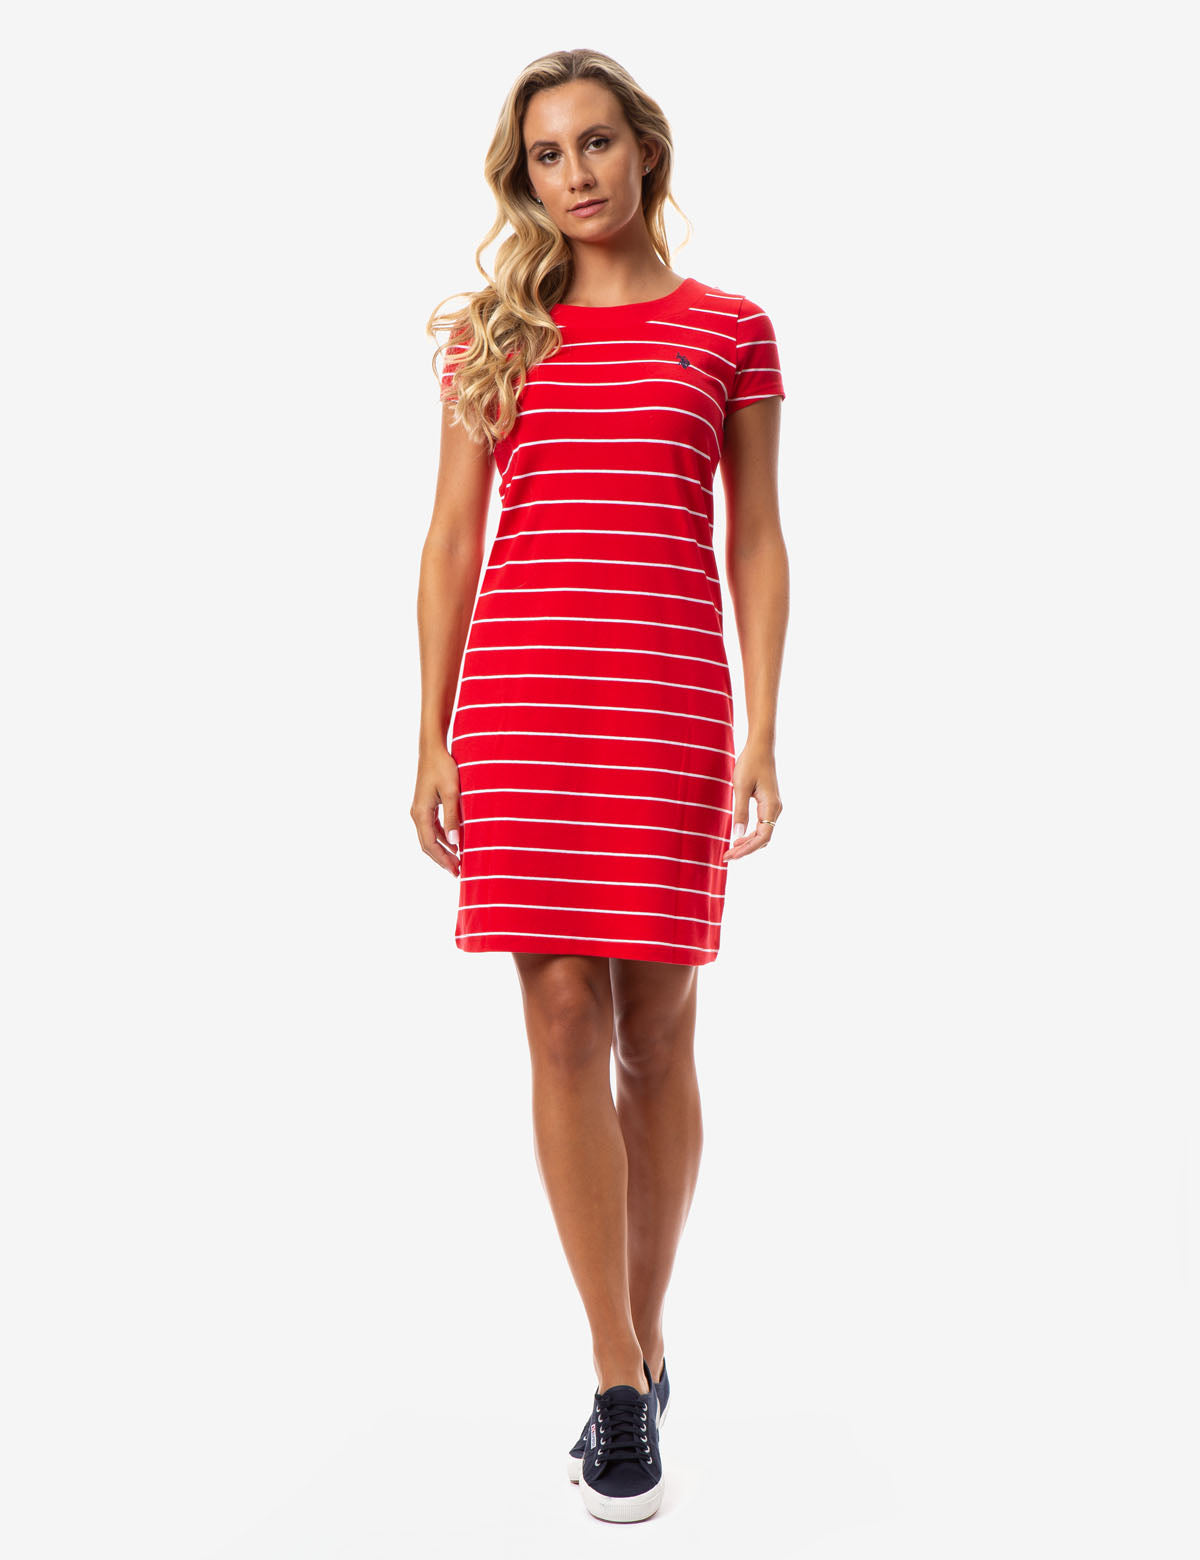 STRIPED T-SHIRT DRESS - U.S. Polo Assn.